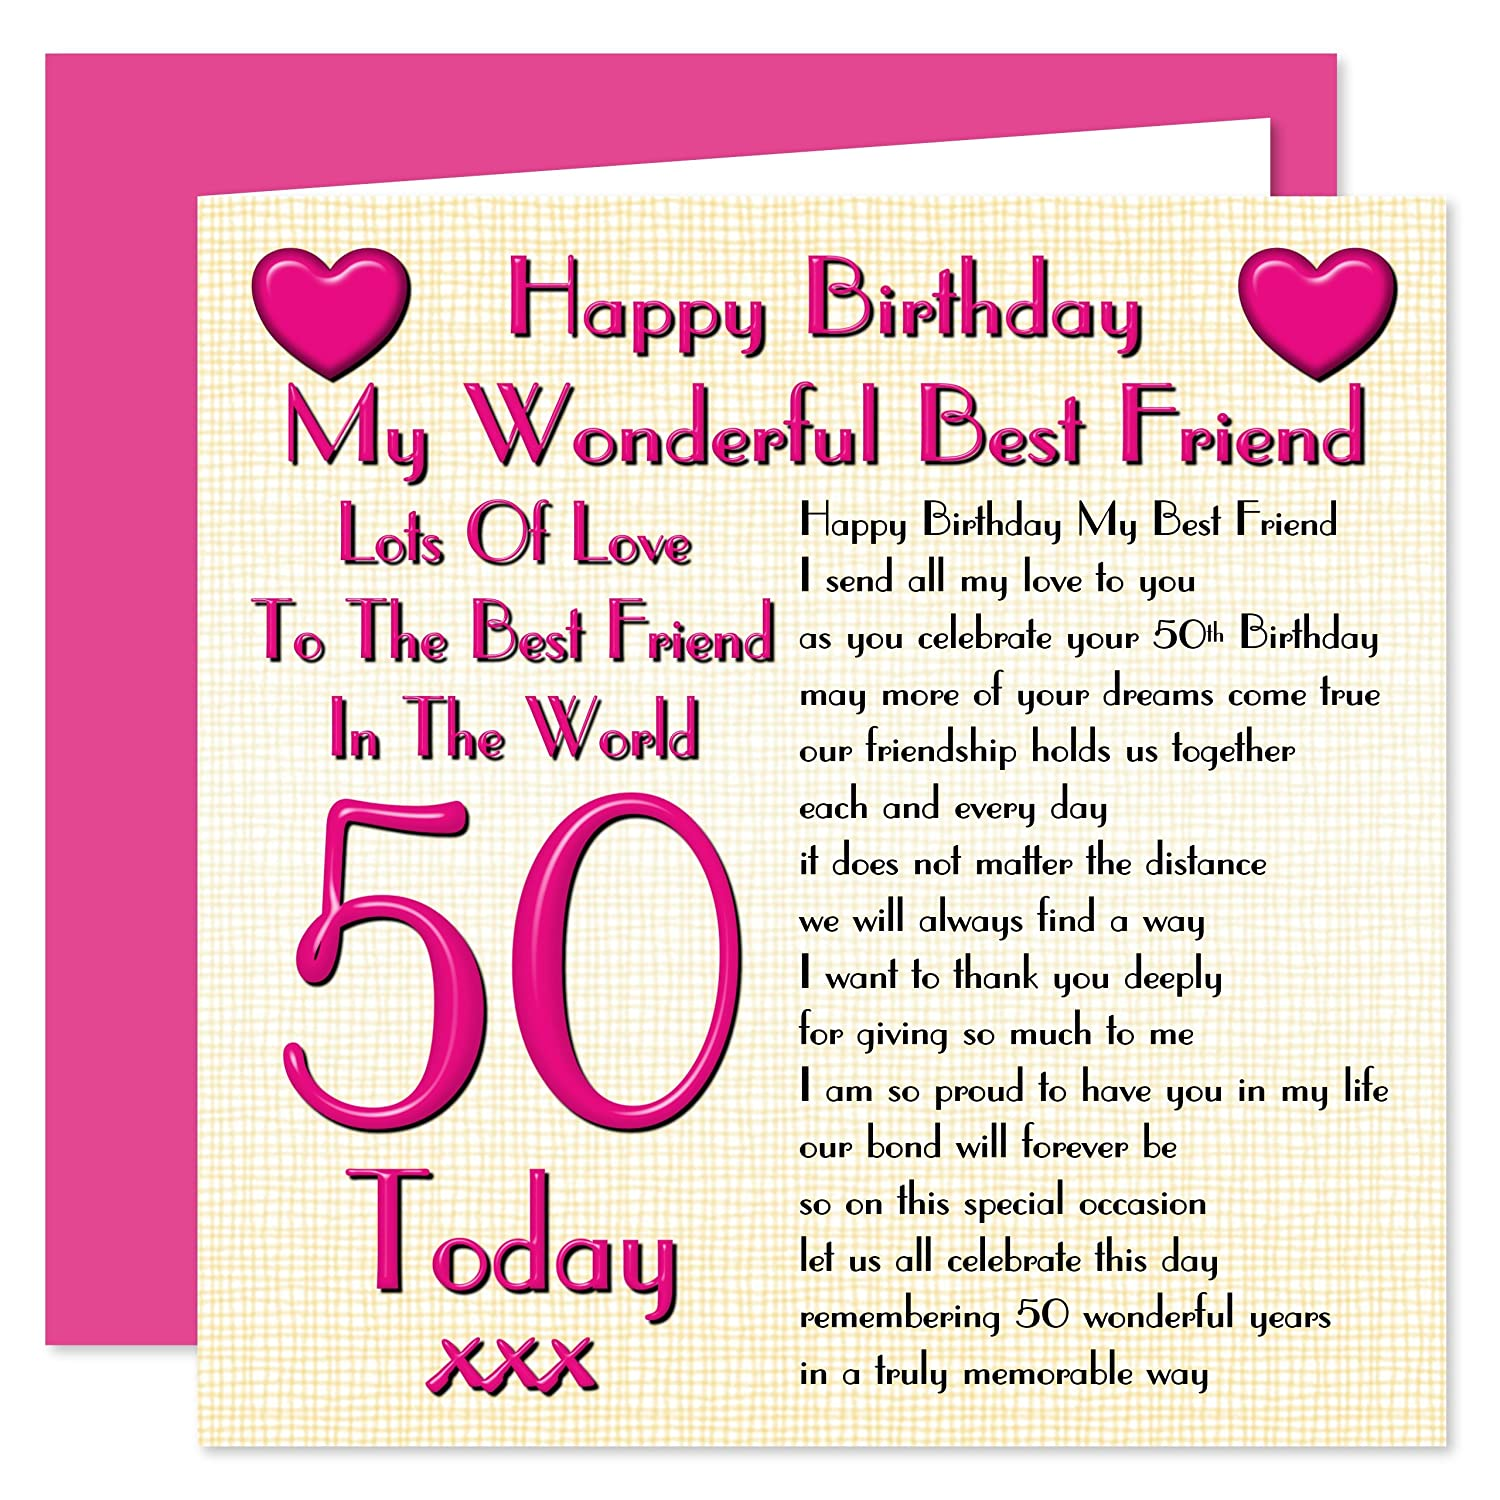 Best Friend 50th Happy Birthday Card   Lots Of Love To The Best Friend In  The World   50 Today: Amazon.co.uk: Office Products